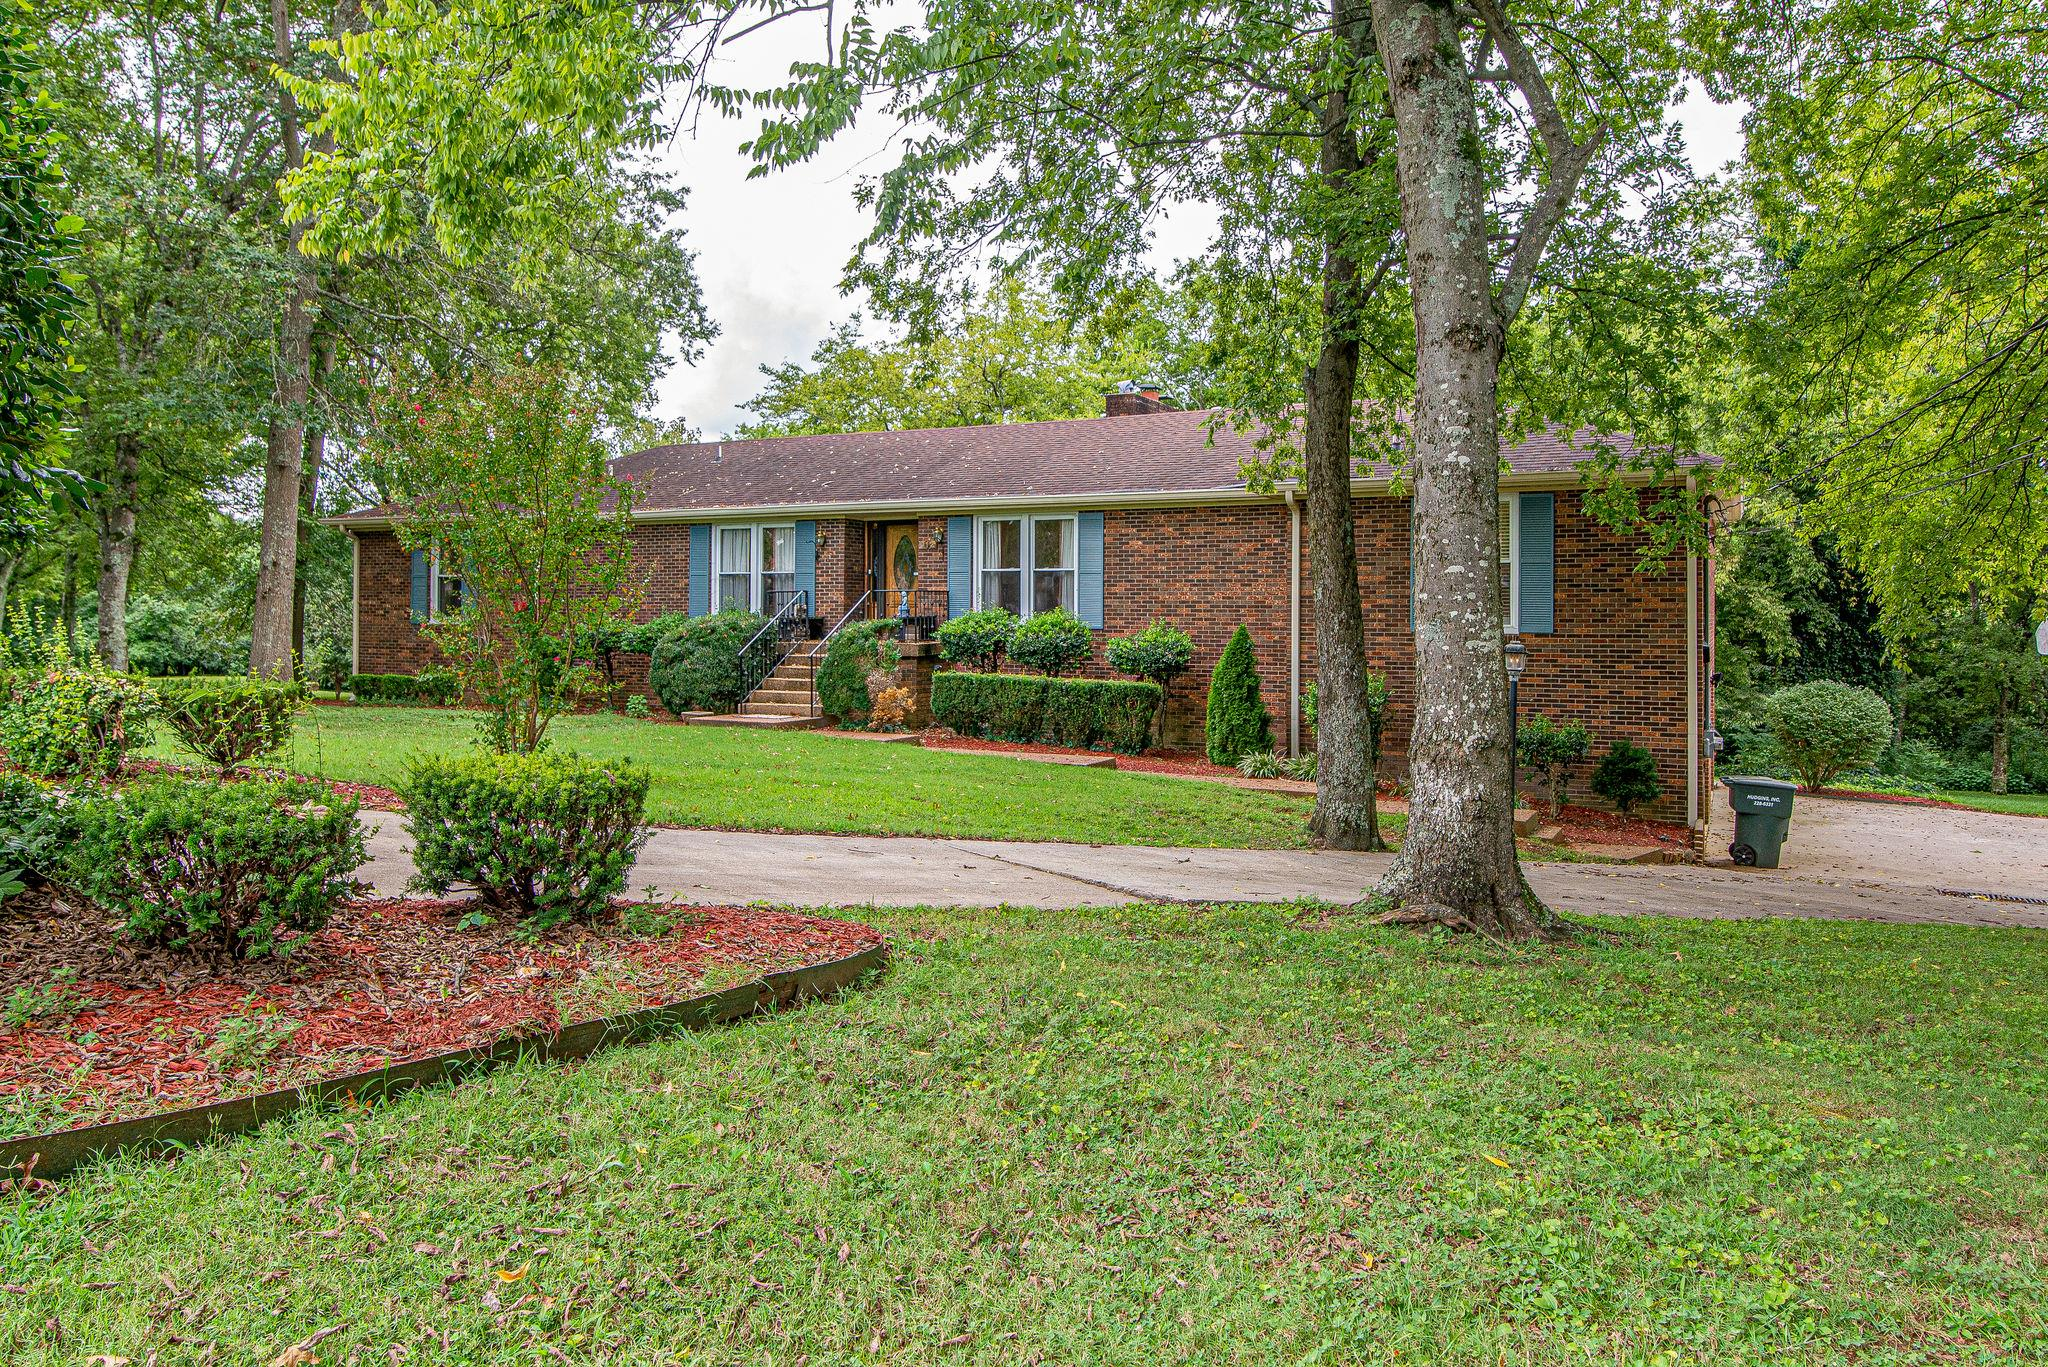 112 Rising Sun Ct, Old Hickory, TN 37138 - Old Hickory, TN real estate listing